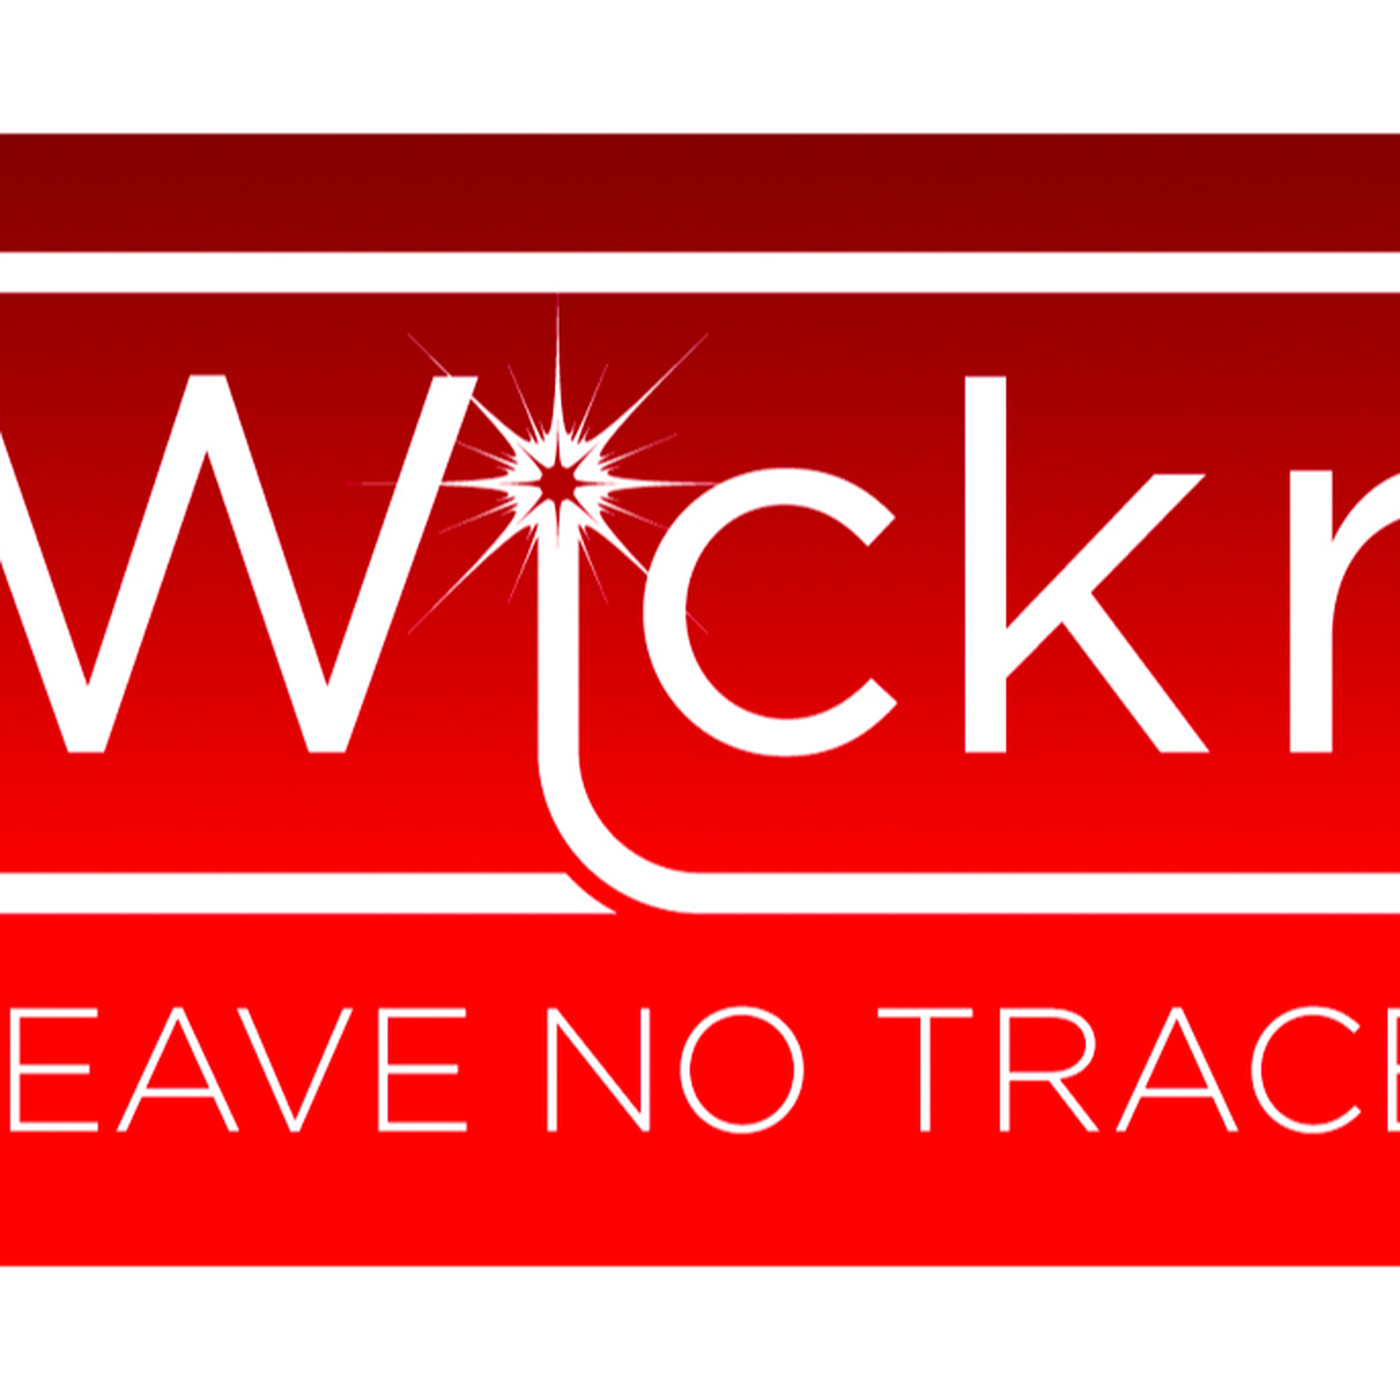 Messaging App Wickr Touts Its Security With Big Bug Bounty - Vox